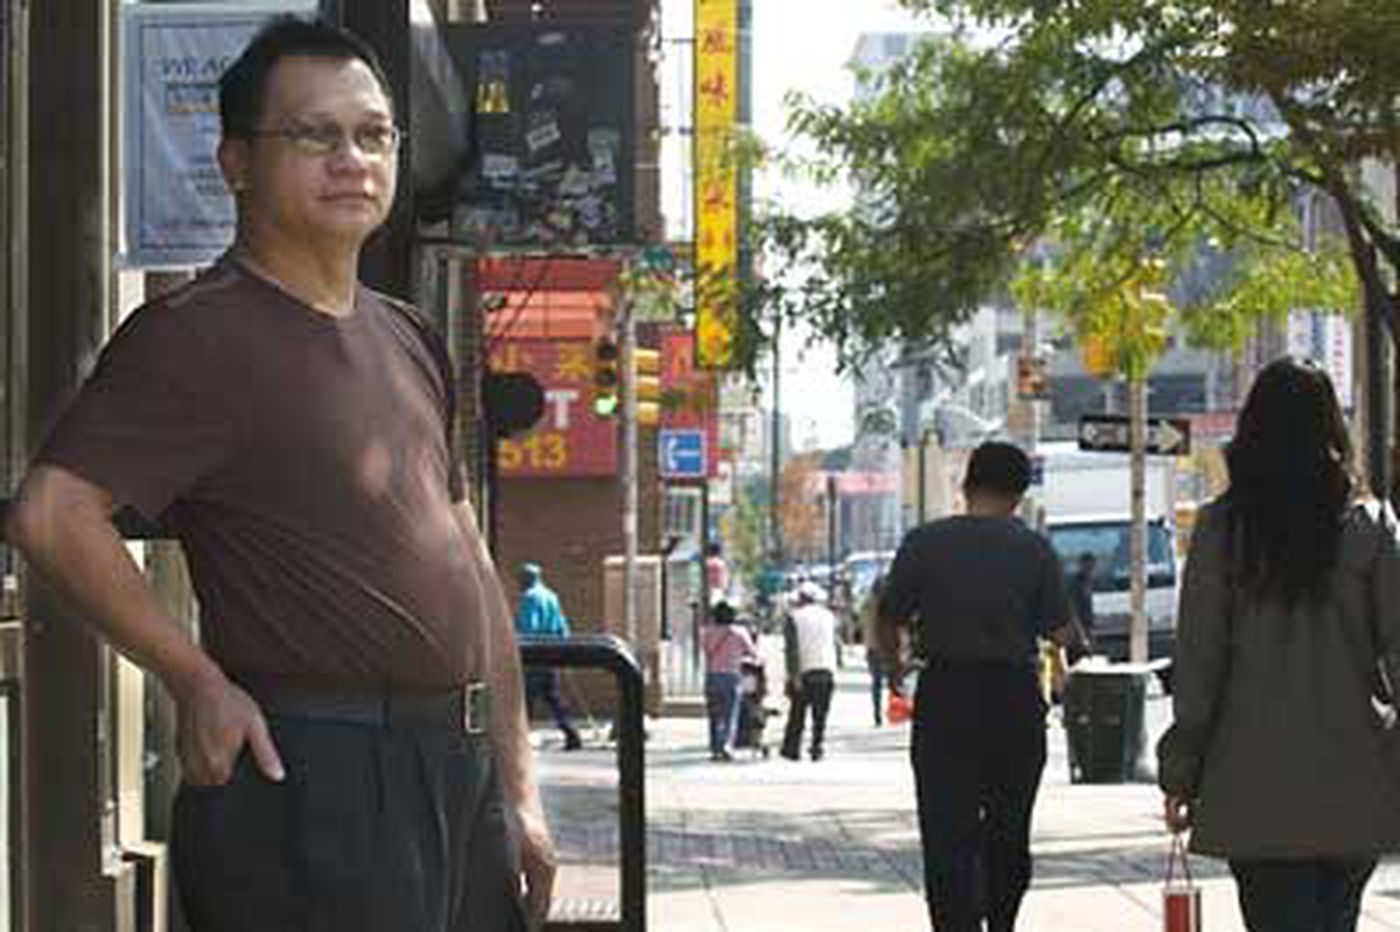 Chinatown residents fear lure of gaming